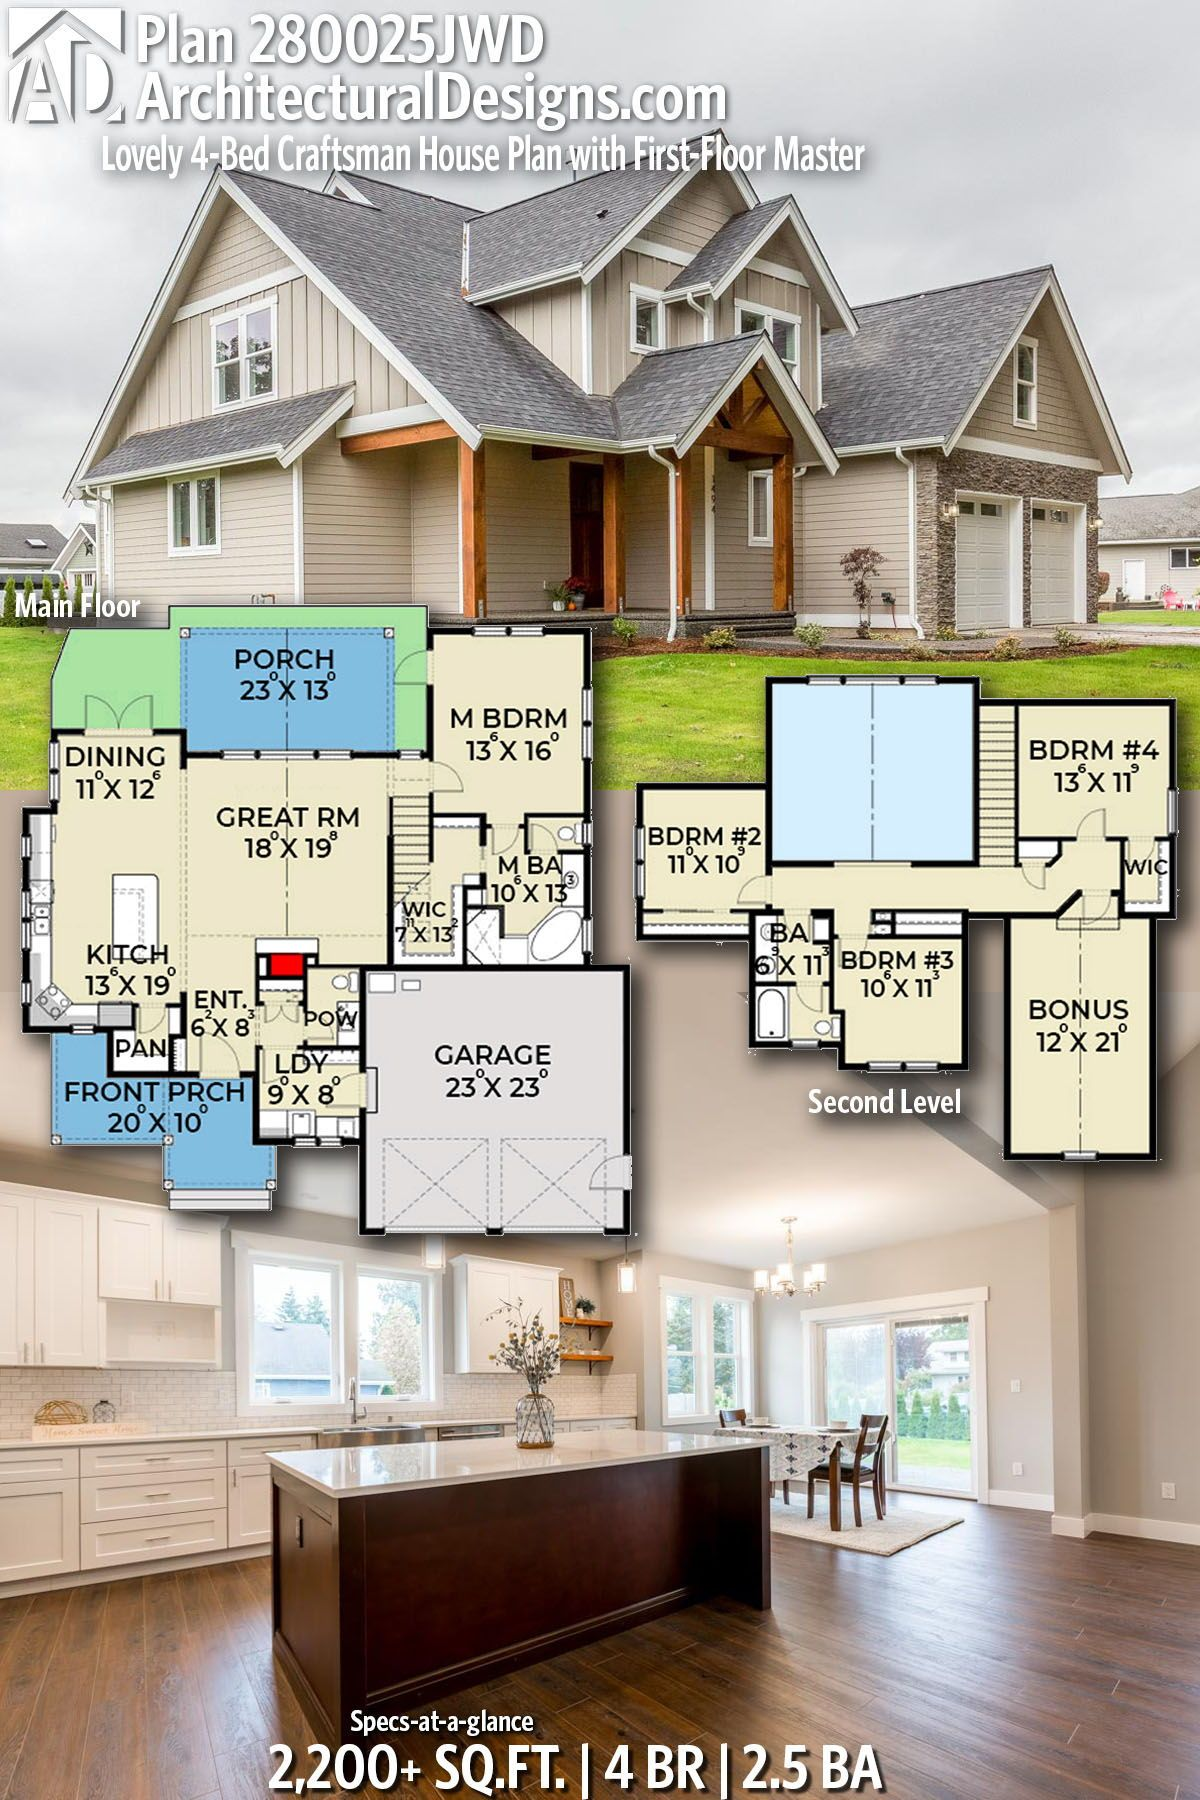 Plan 280025jwd Lovely 4 Bed Craftsman House Plan With First Floor Master In 2020 Craftsman House Plans House Blueprints House Plans